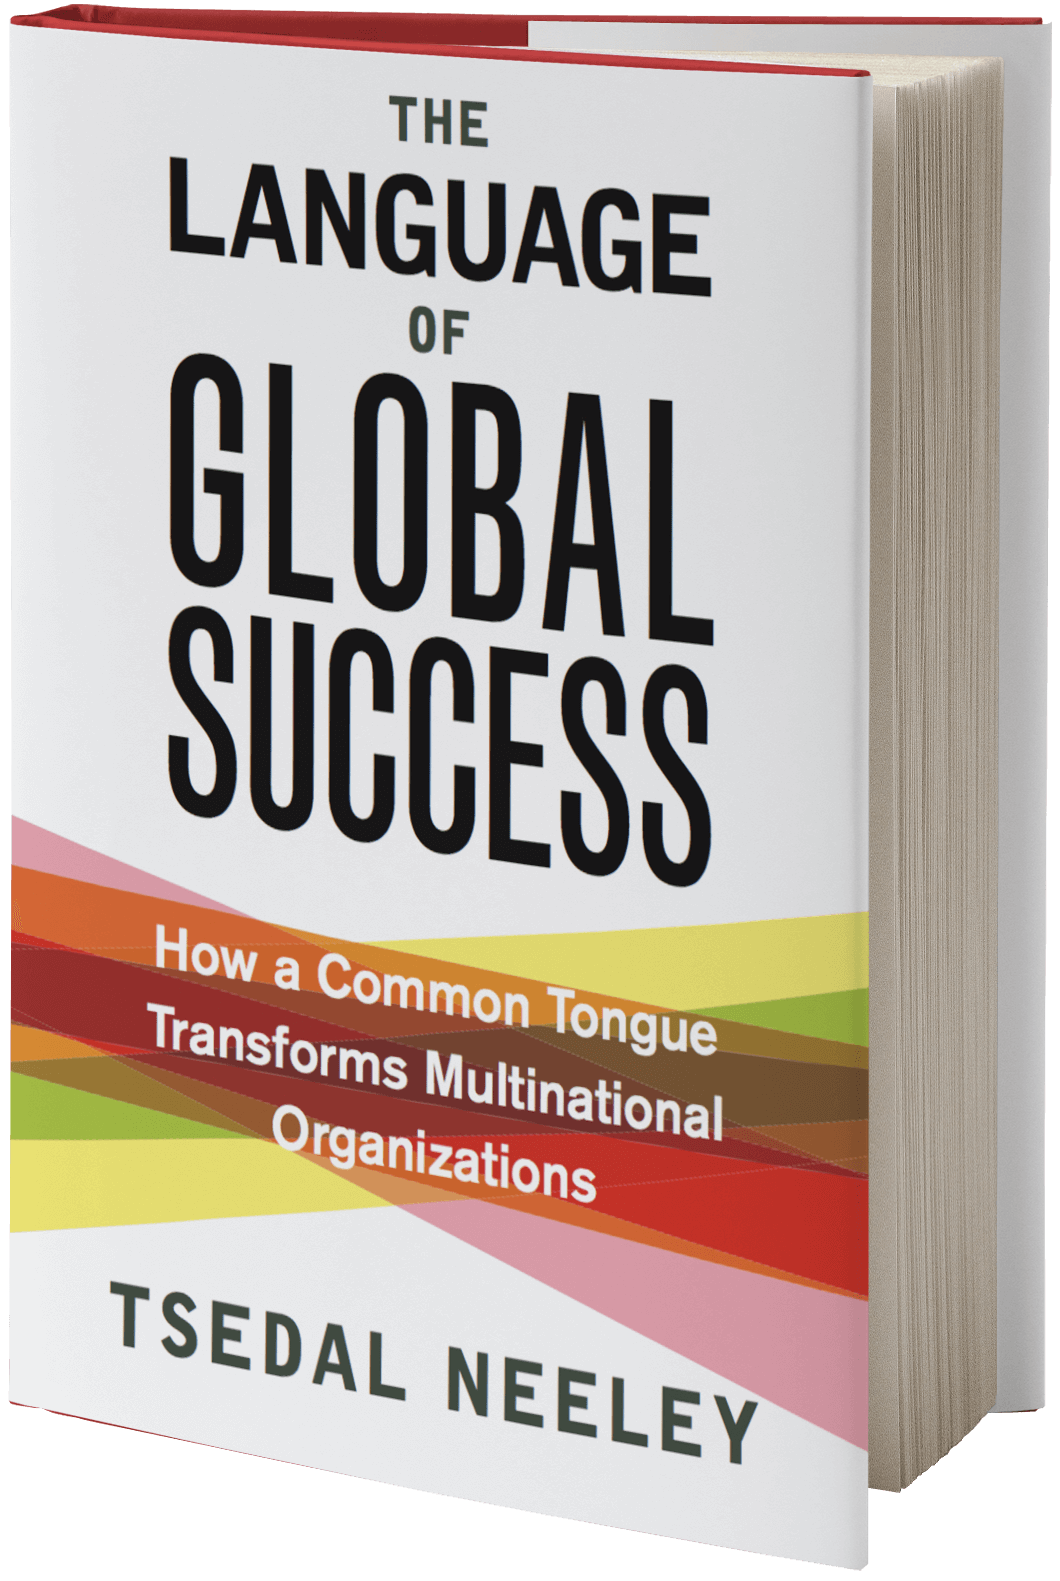 language and globalization englishnization at rakuten The language of global success: how a common tongue transforms multinational organizations englishnization transmitted rakuten's japanese work practices.